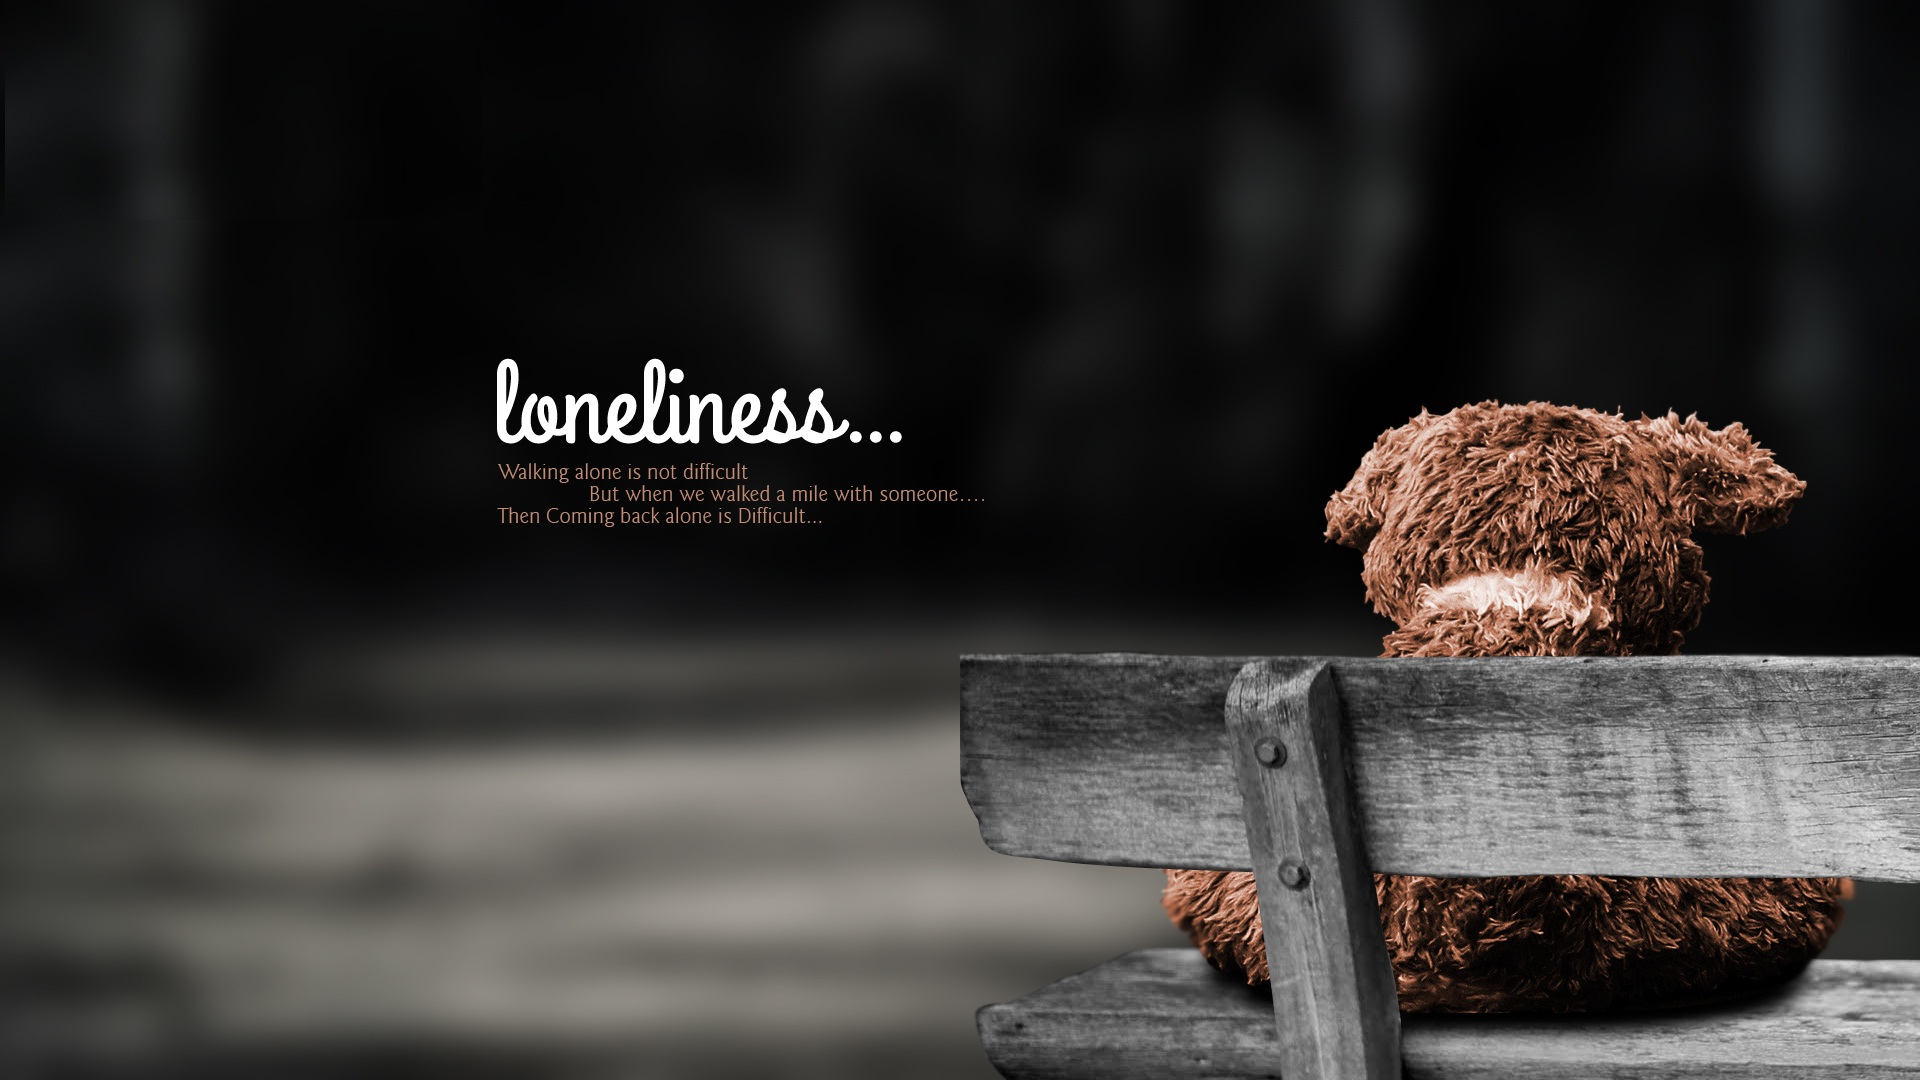 Loneliness Wallpapers HD, Desktop Backgrounds, Images and Pictures 1920x1080